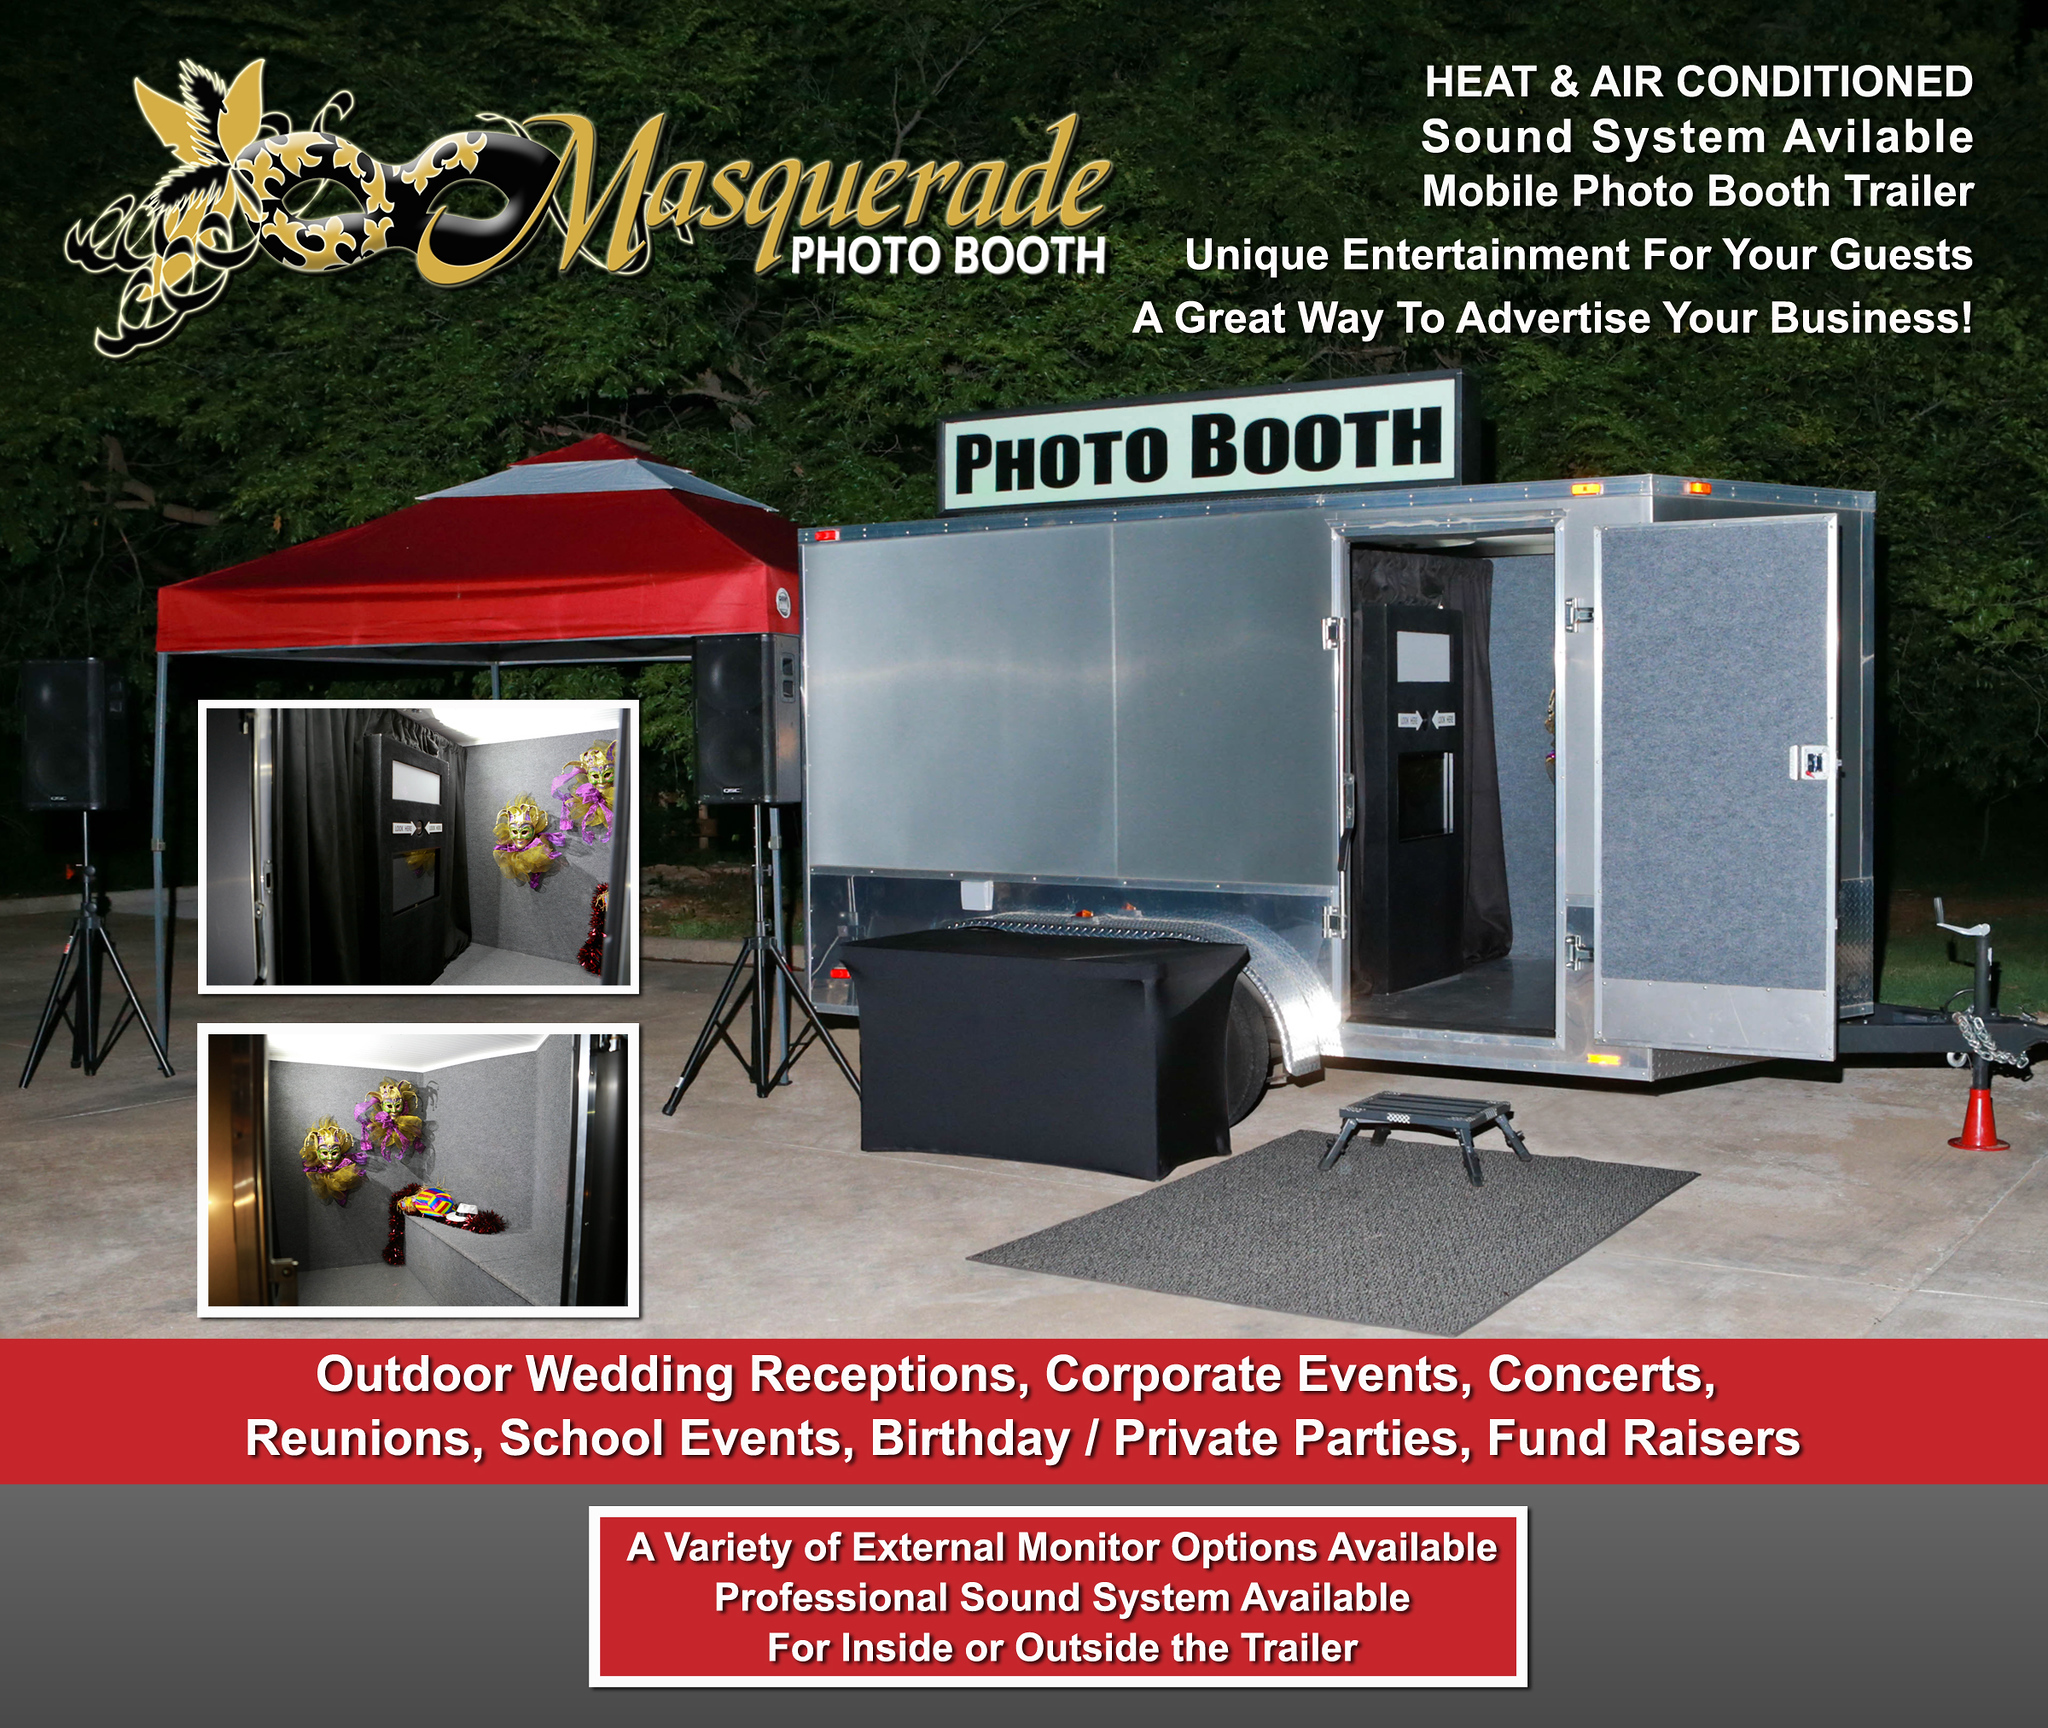 Photo Booth Trailer 2018